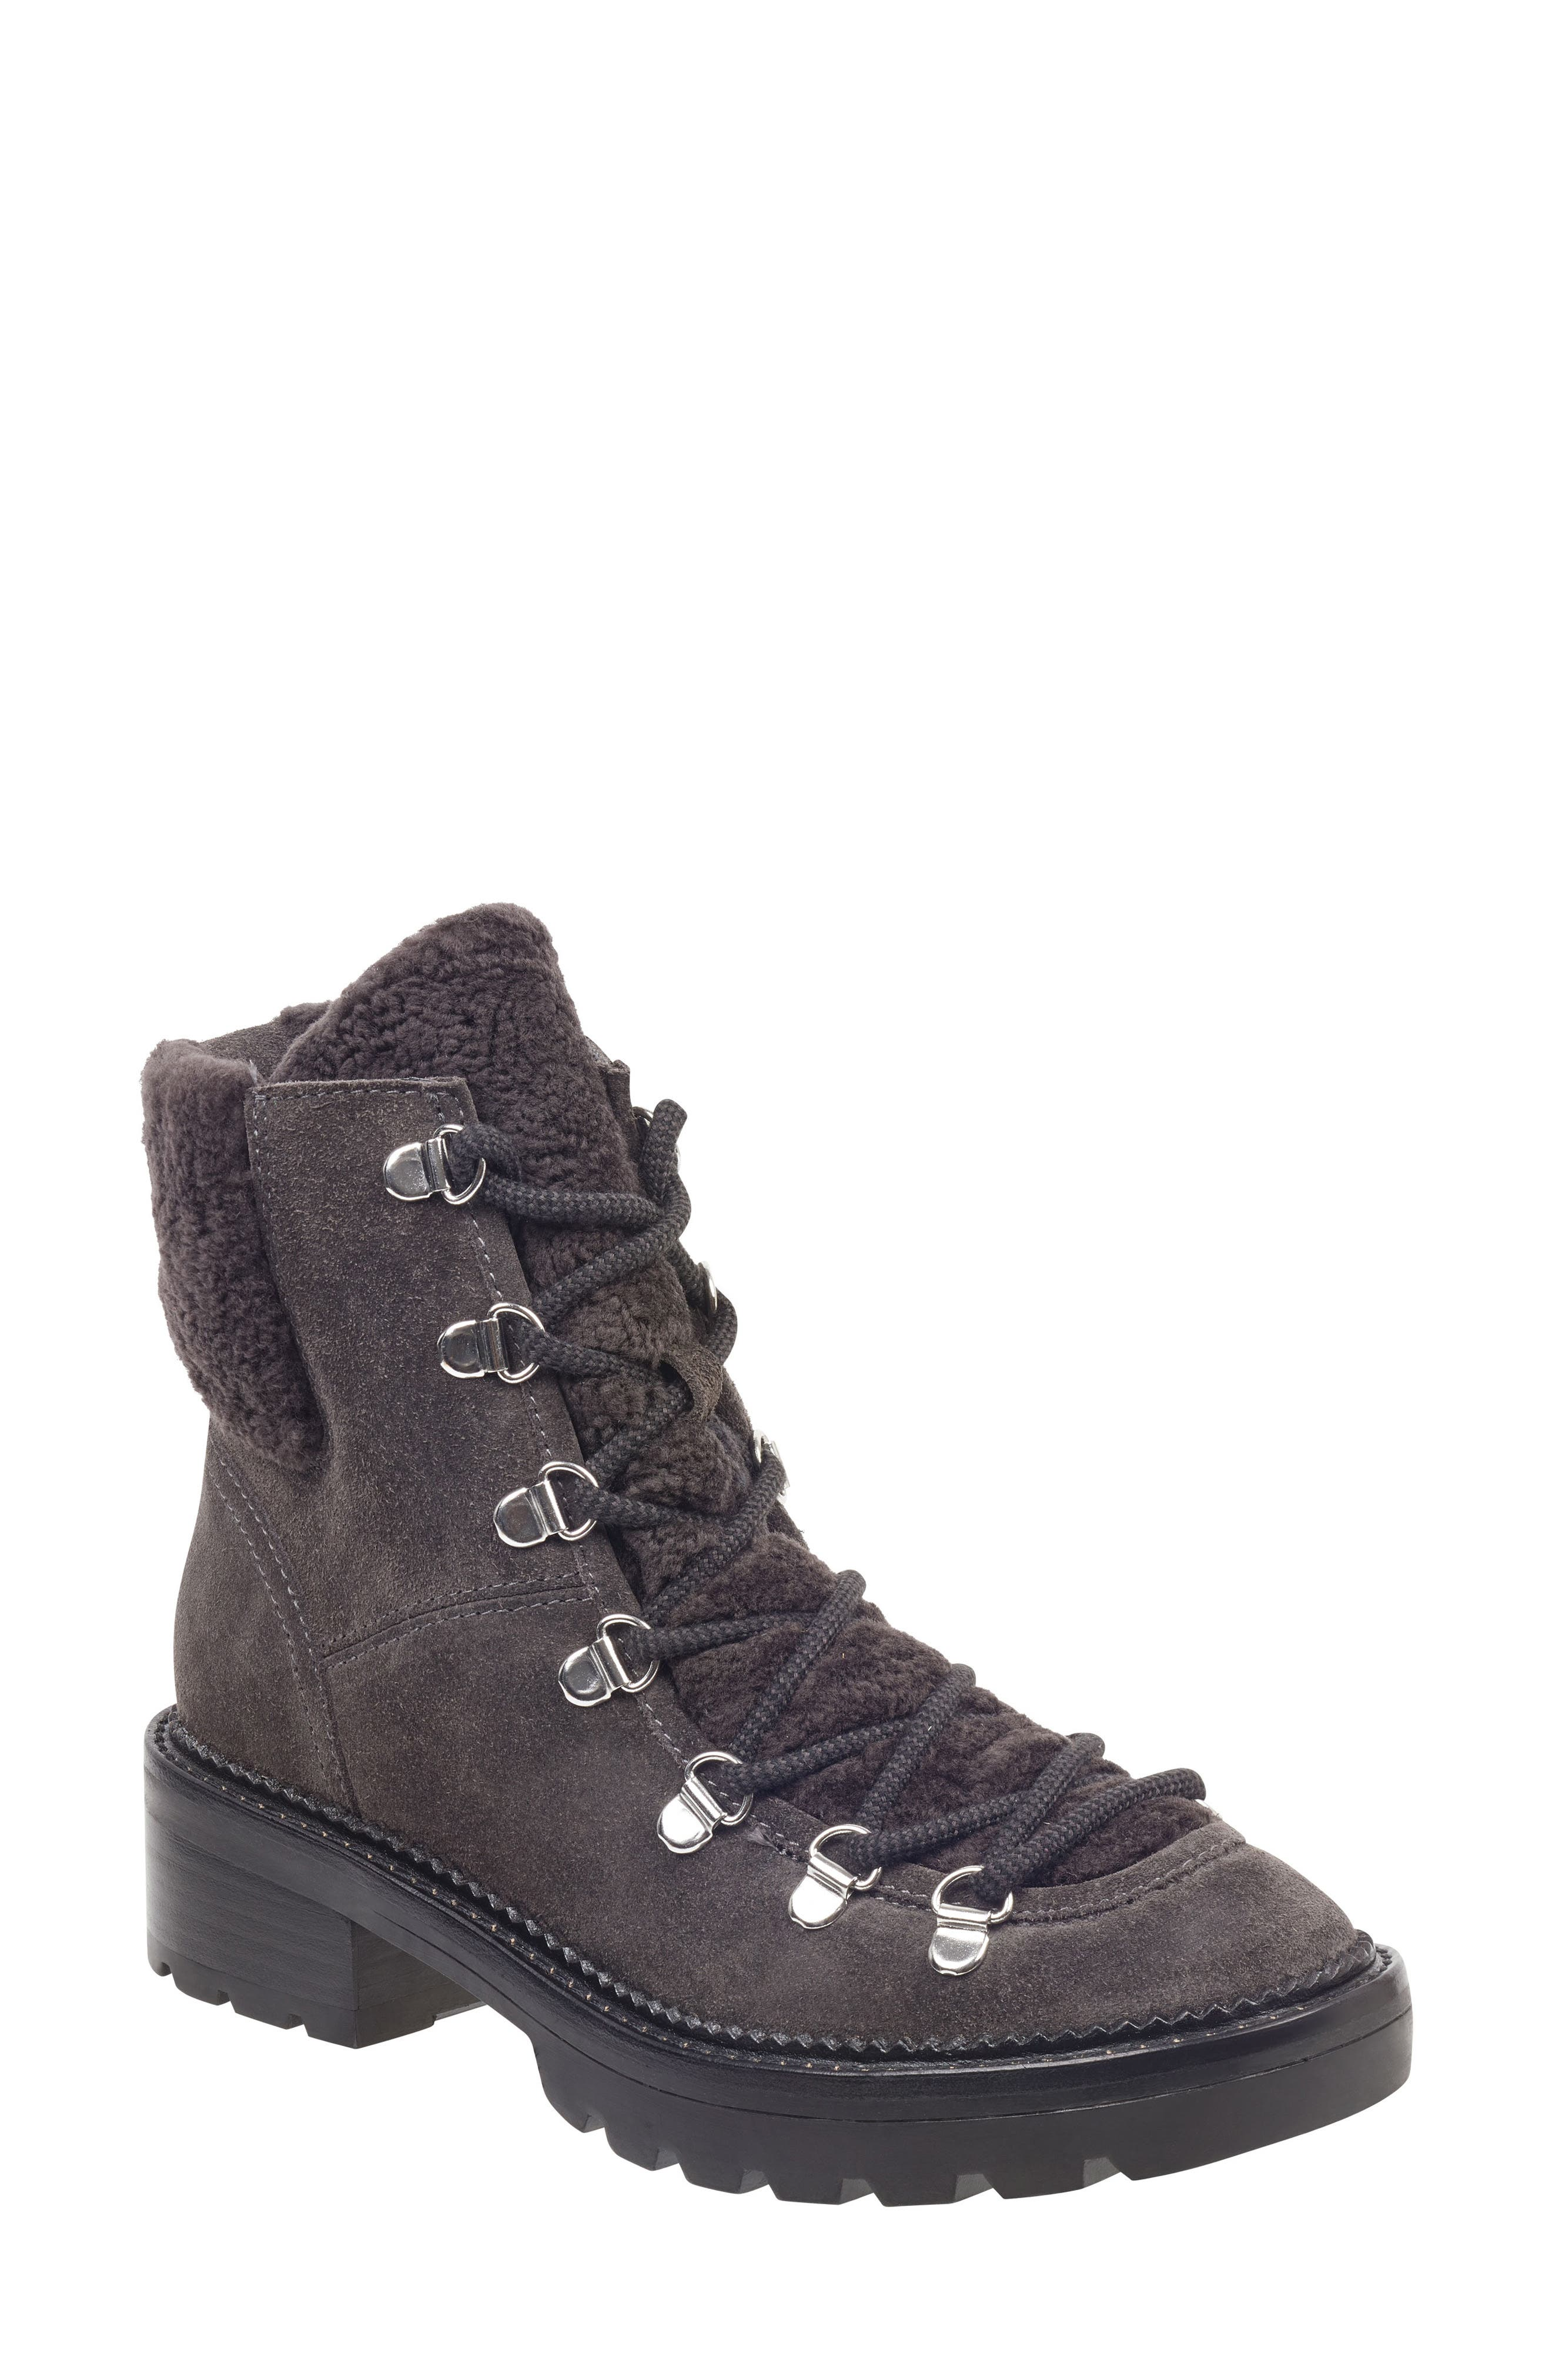 MARC FISHER LTD Capell Genuine Shearling Cuff Lace-Up Boot, Main, color, GREY SUEDE